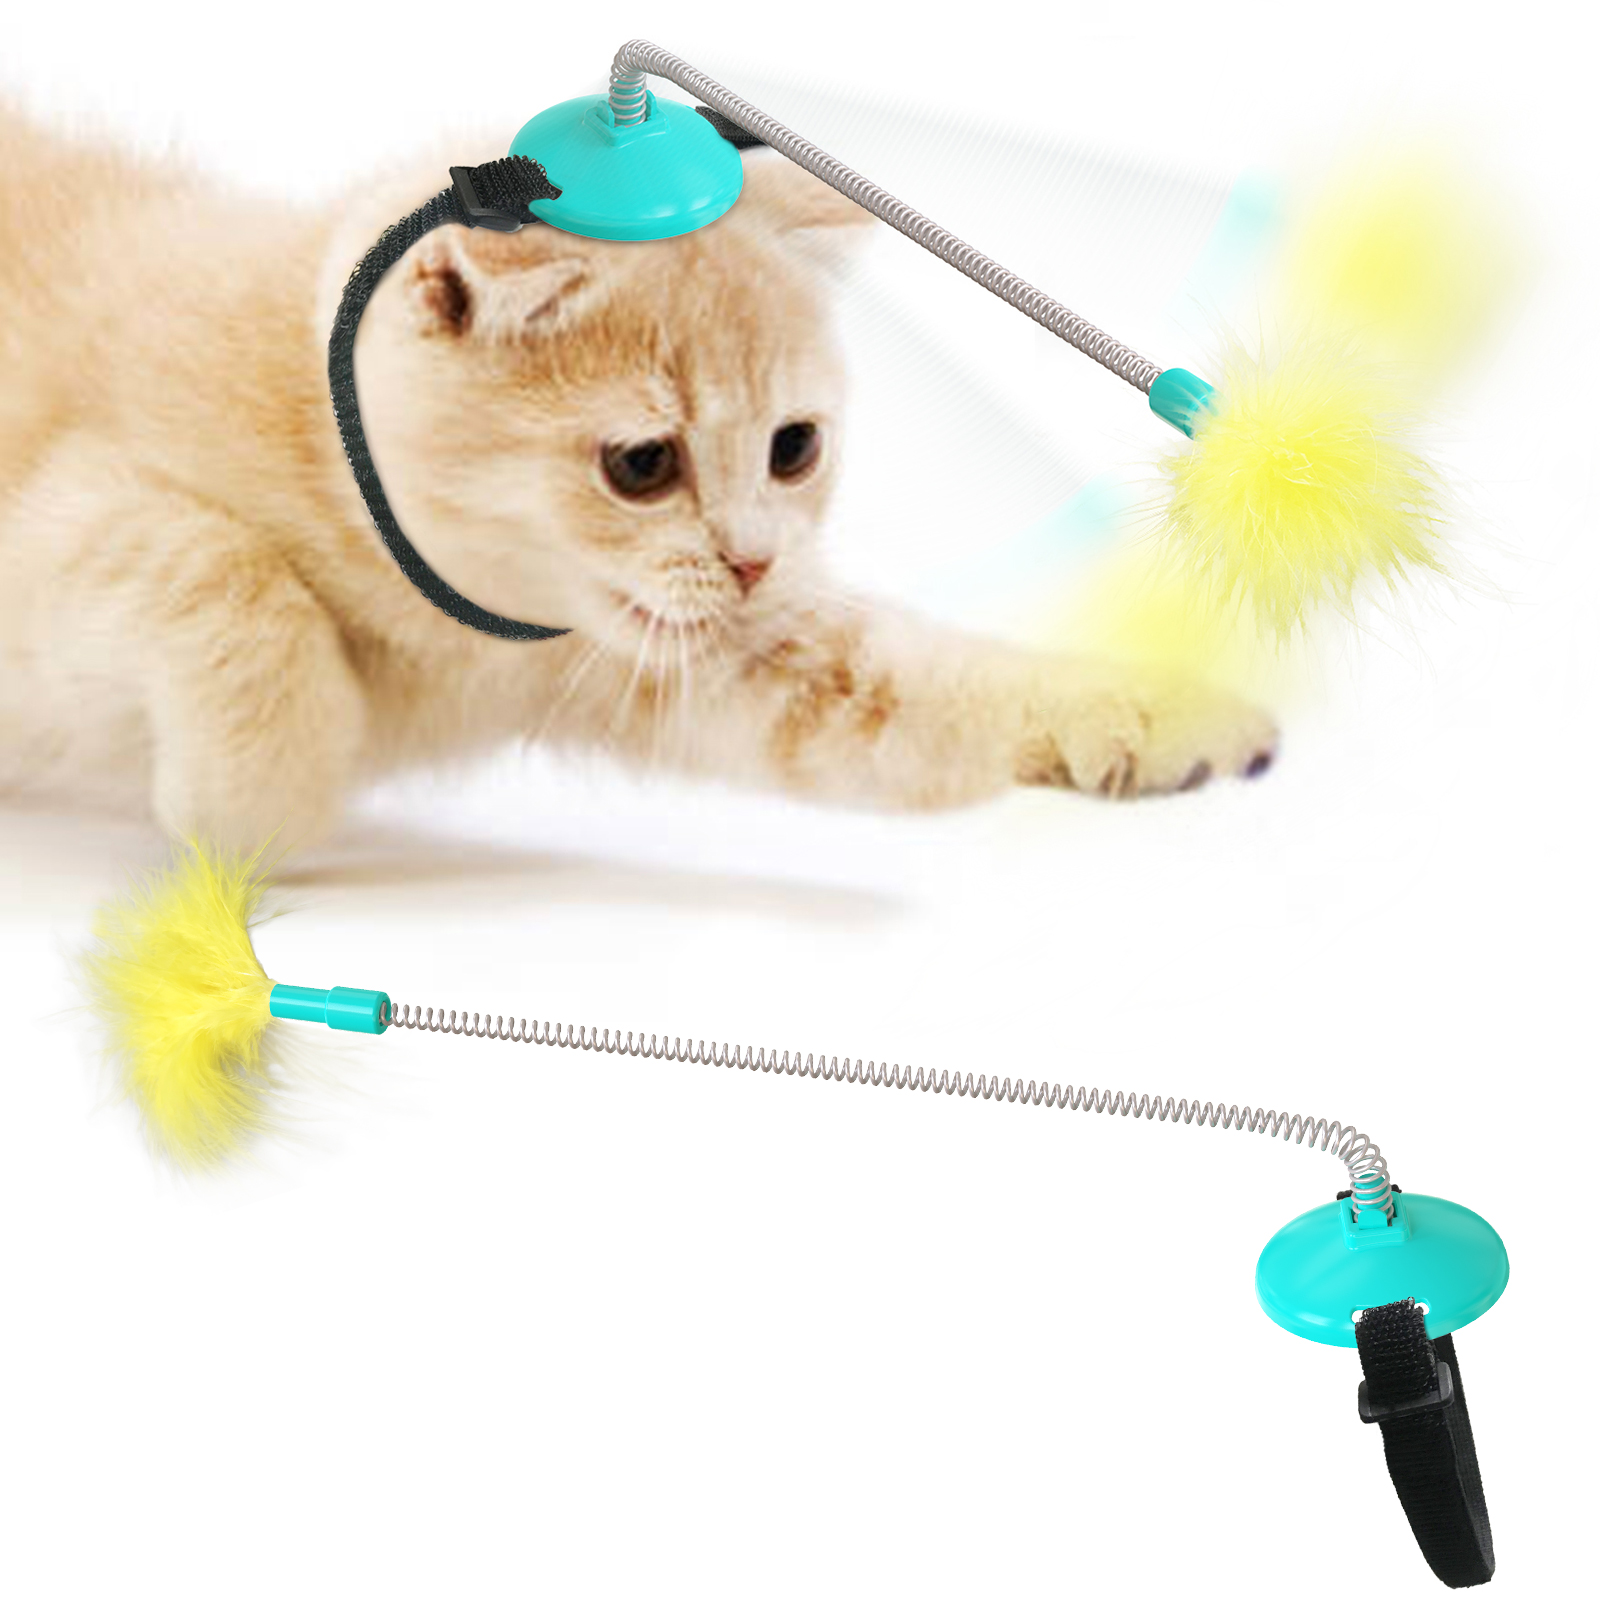 2021 New Head-Mounted Cat Toys Self Playing Interacting Pet Toy Spring and Feather Funny Cat Stick for Indoor Cats Dropshipping img1